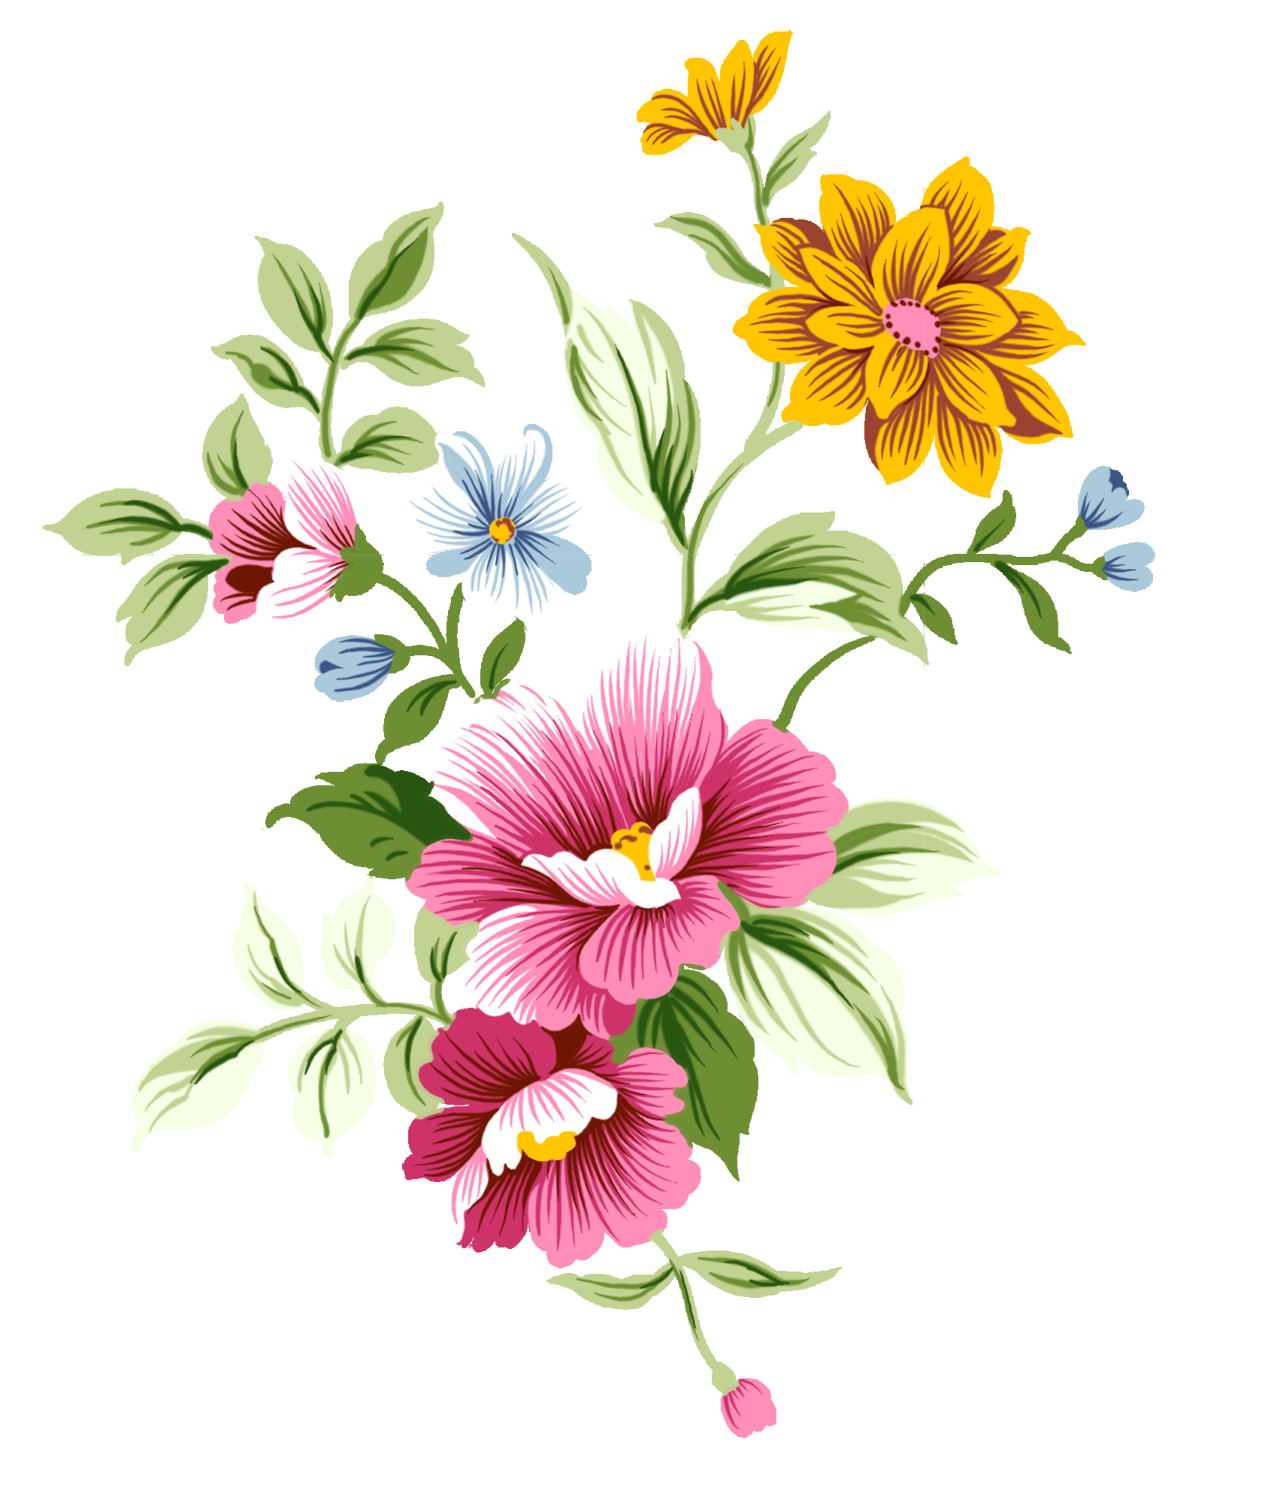 Png flower. Download abstract picture hq